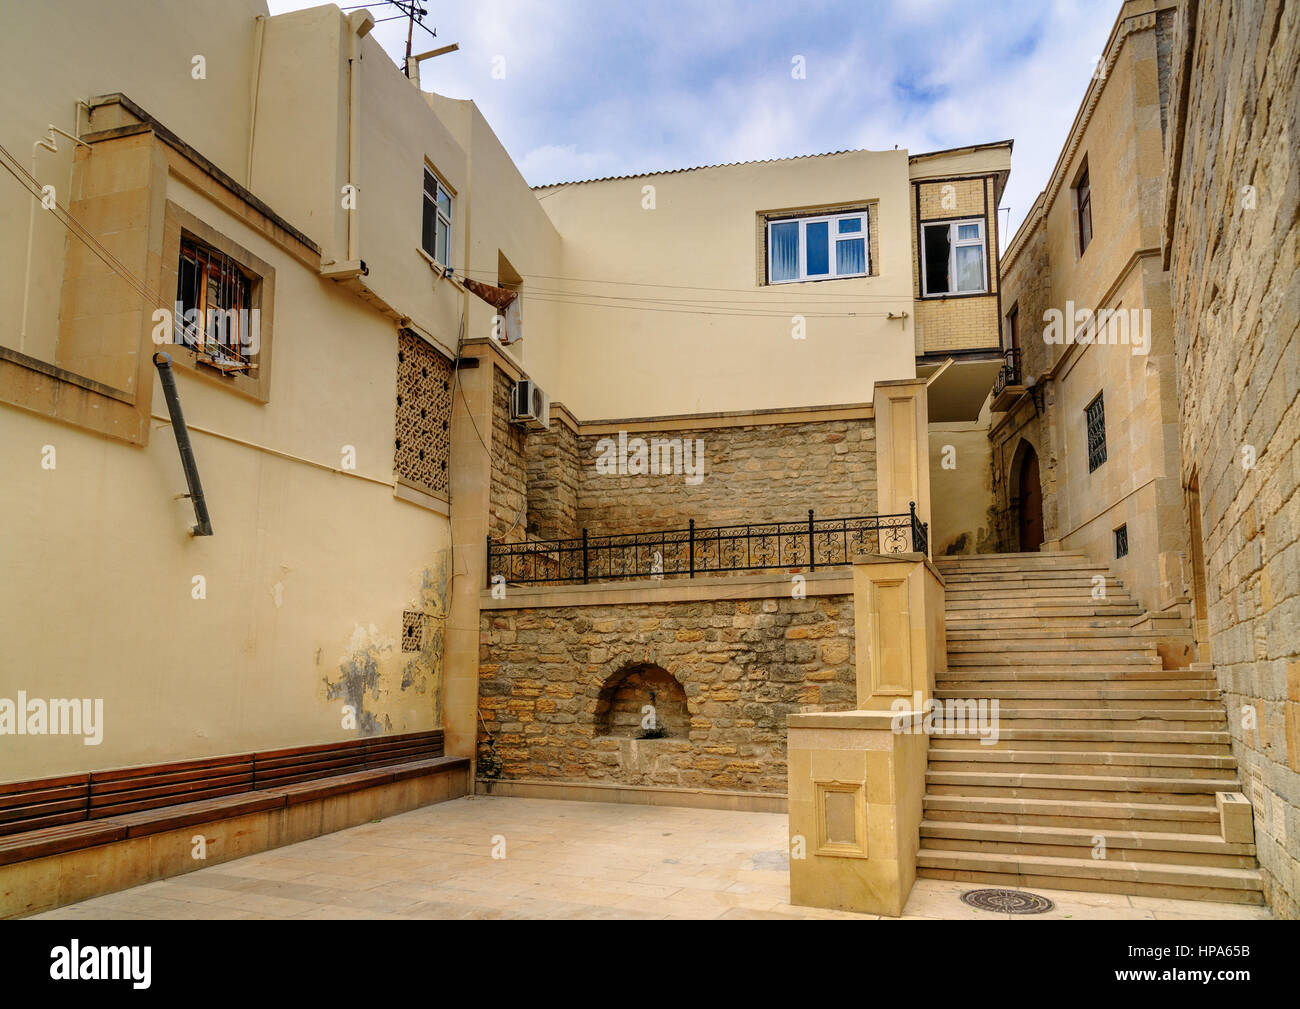 Street in Old city, Icheri Sheher is the historical core of Baku. Azerbaijan. World Heritage Site by UNESCO - Stock Image